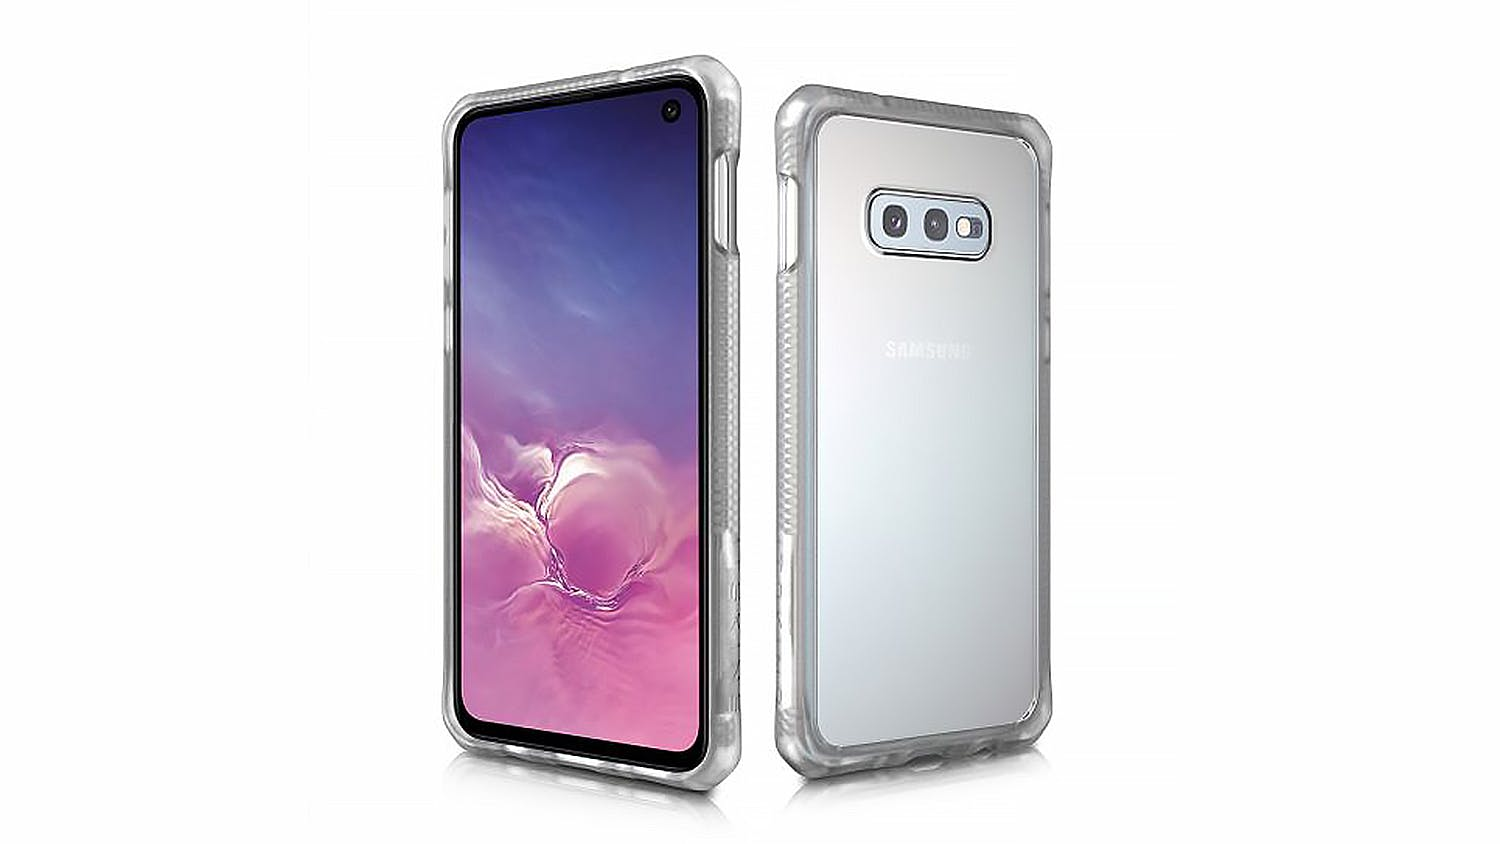 ITSKINS Hybrid MKII Case for Samsung Galaxy S10e - Clear